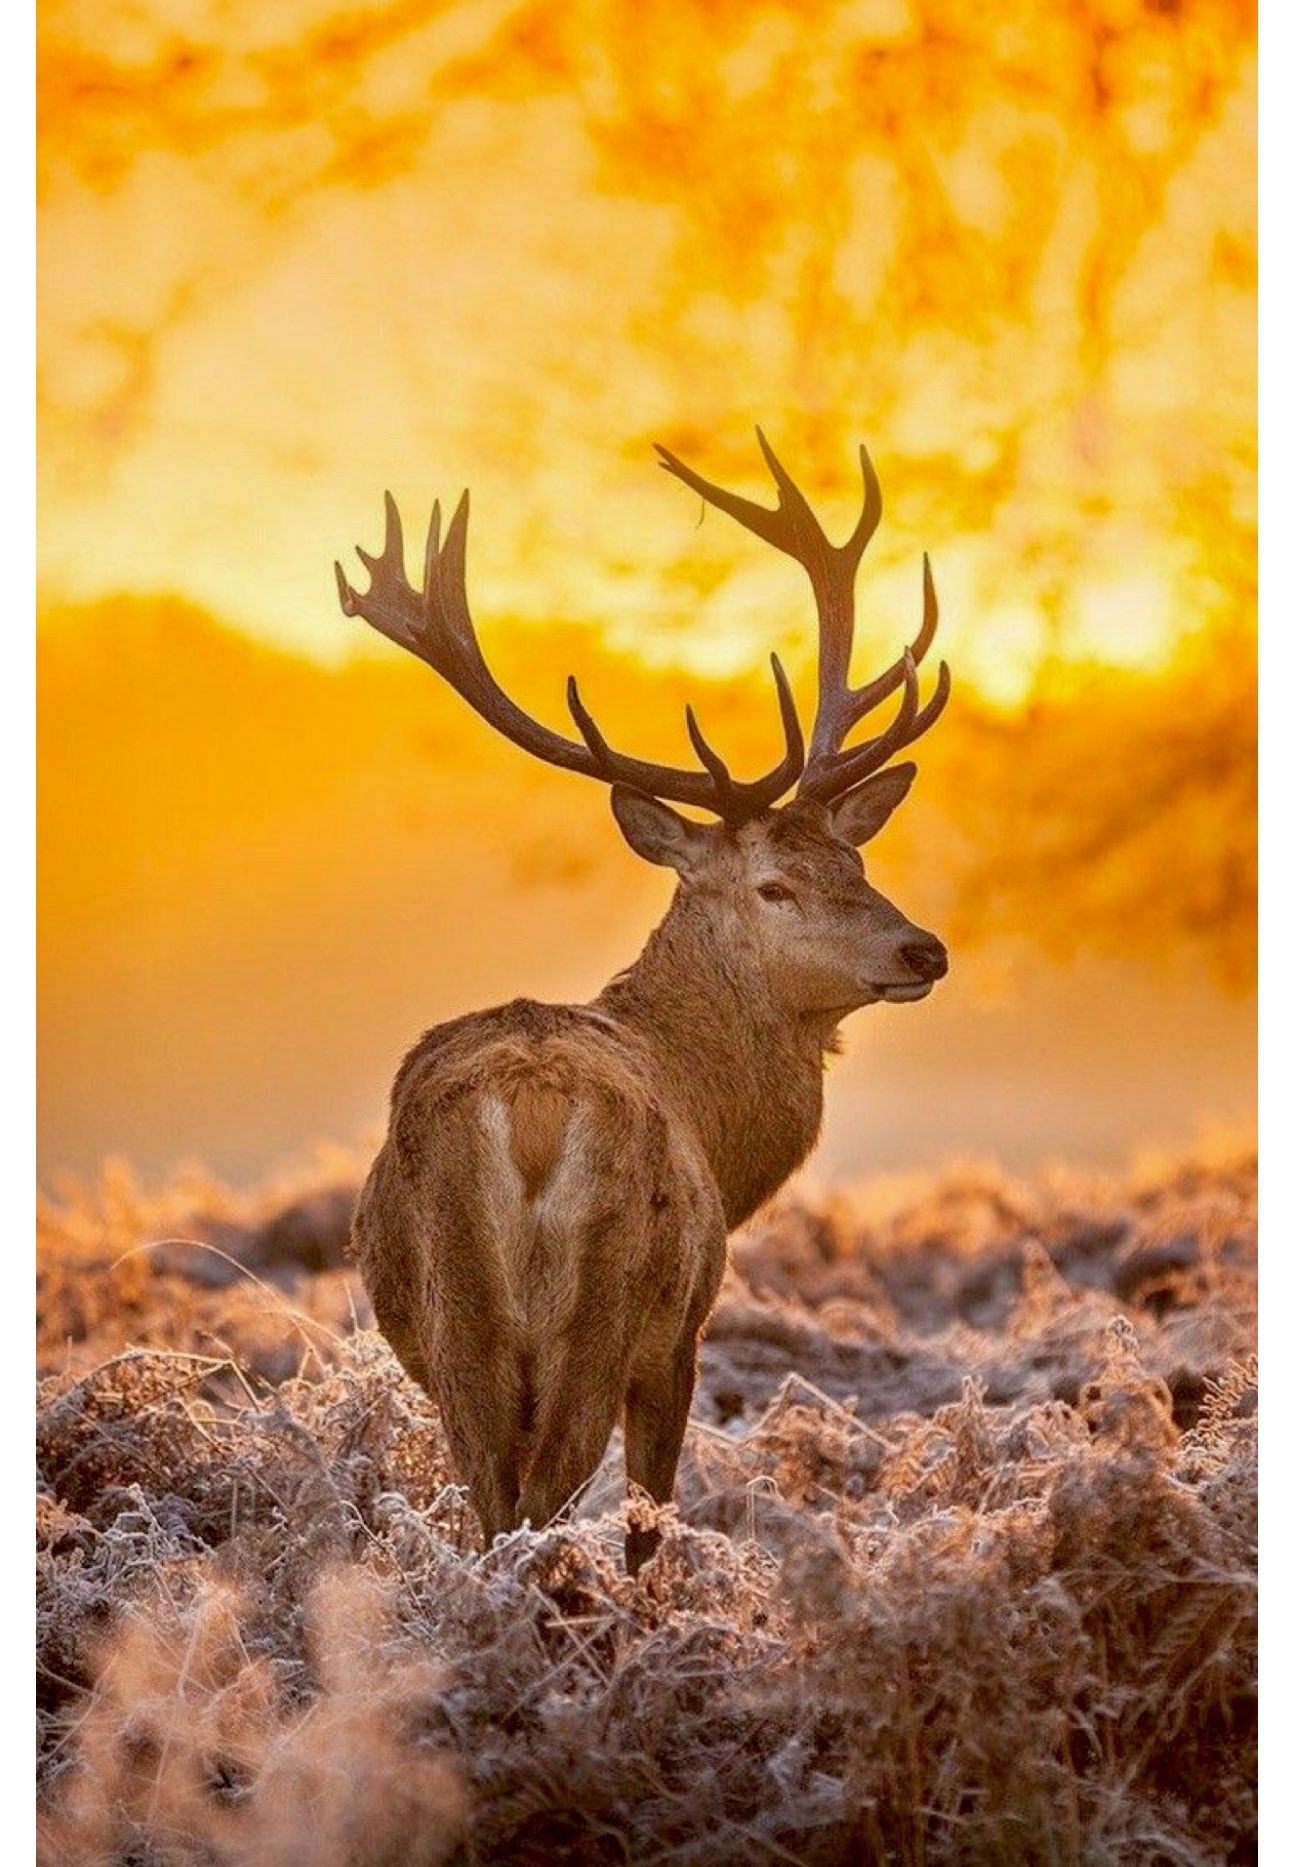 European Red Deer Stag At Sunset Beautiful Deer Background Deer Wallpaper Deer